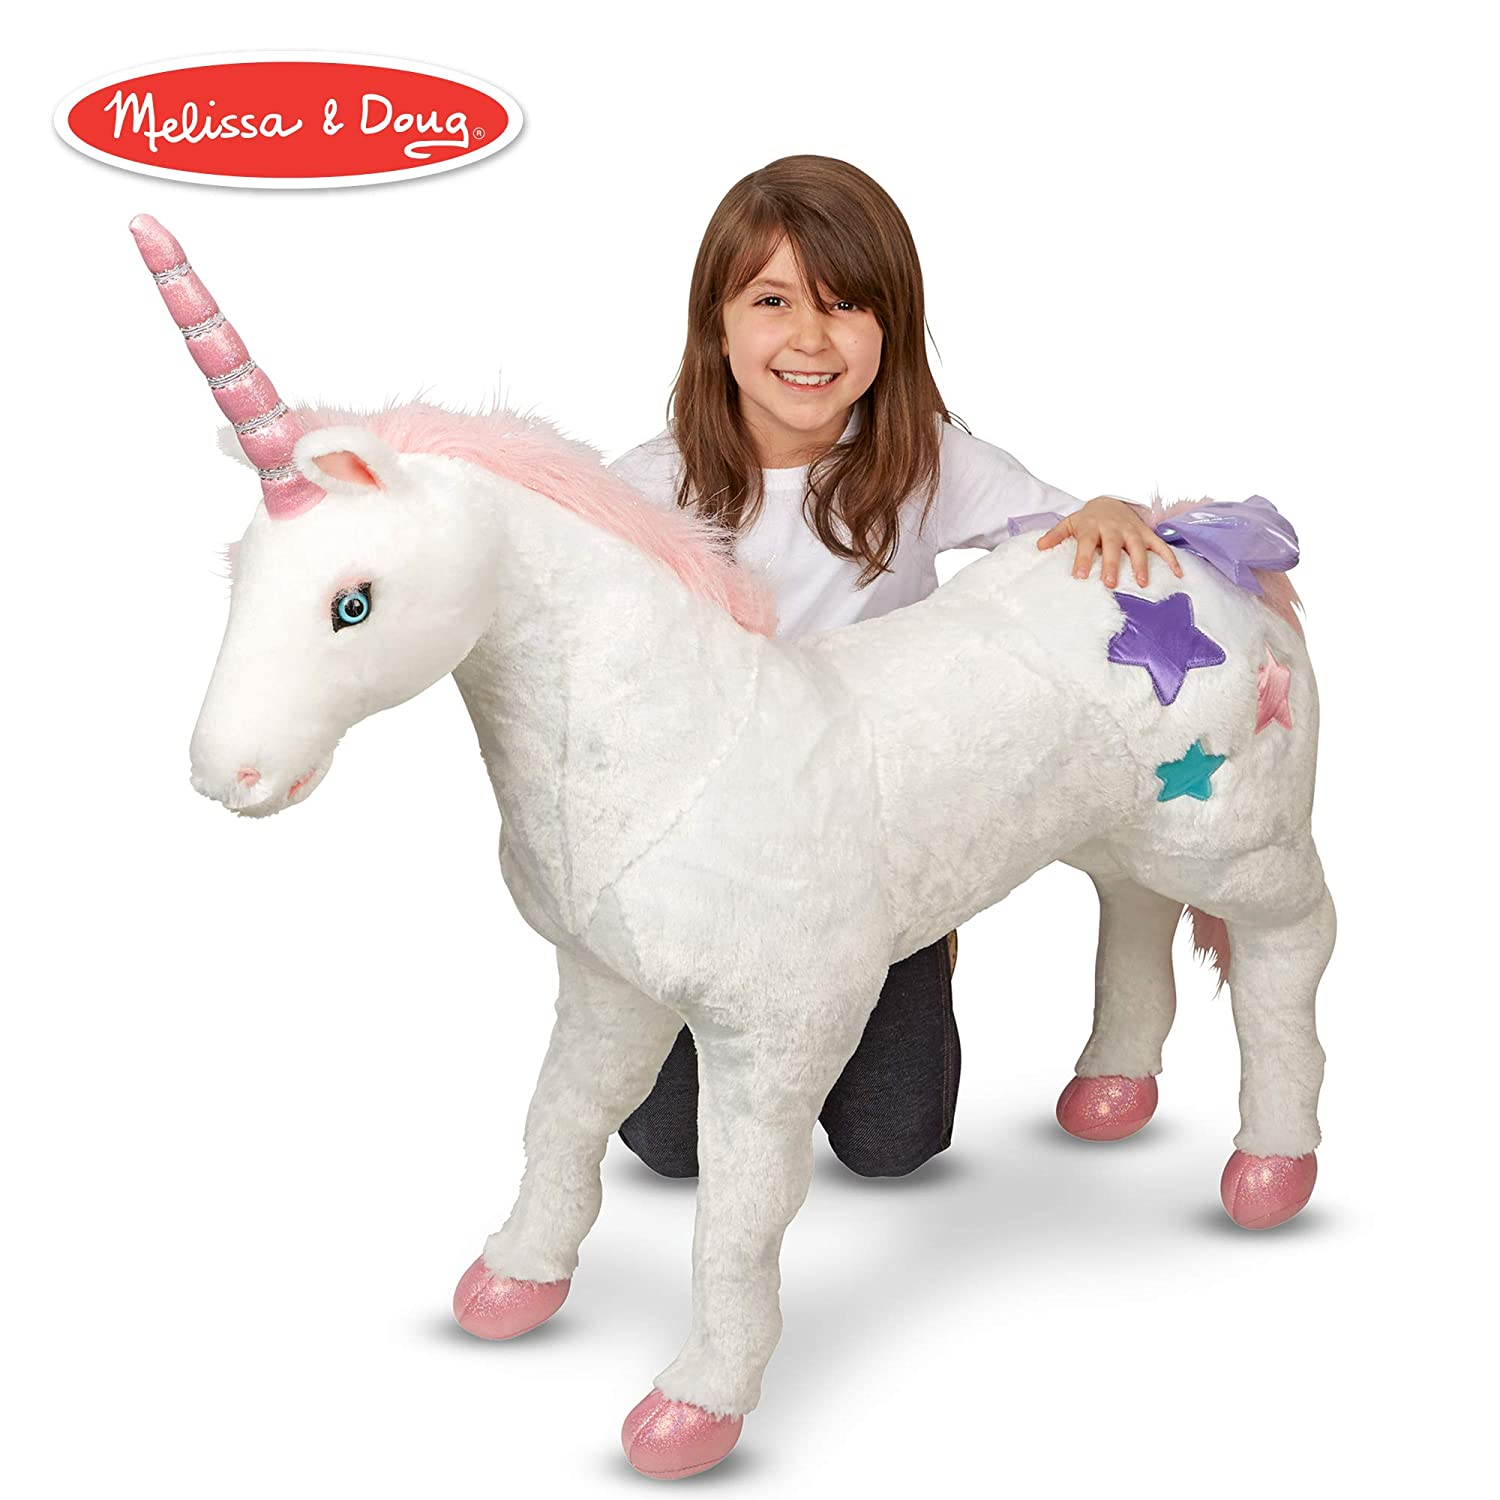 23 Best Unicorn Toys and Gifts for Girls Reviews of 2021 38